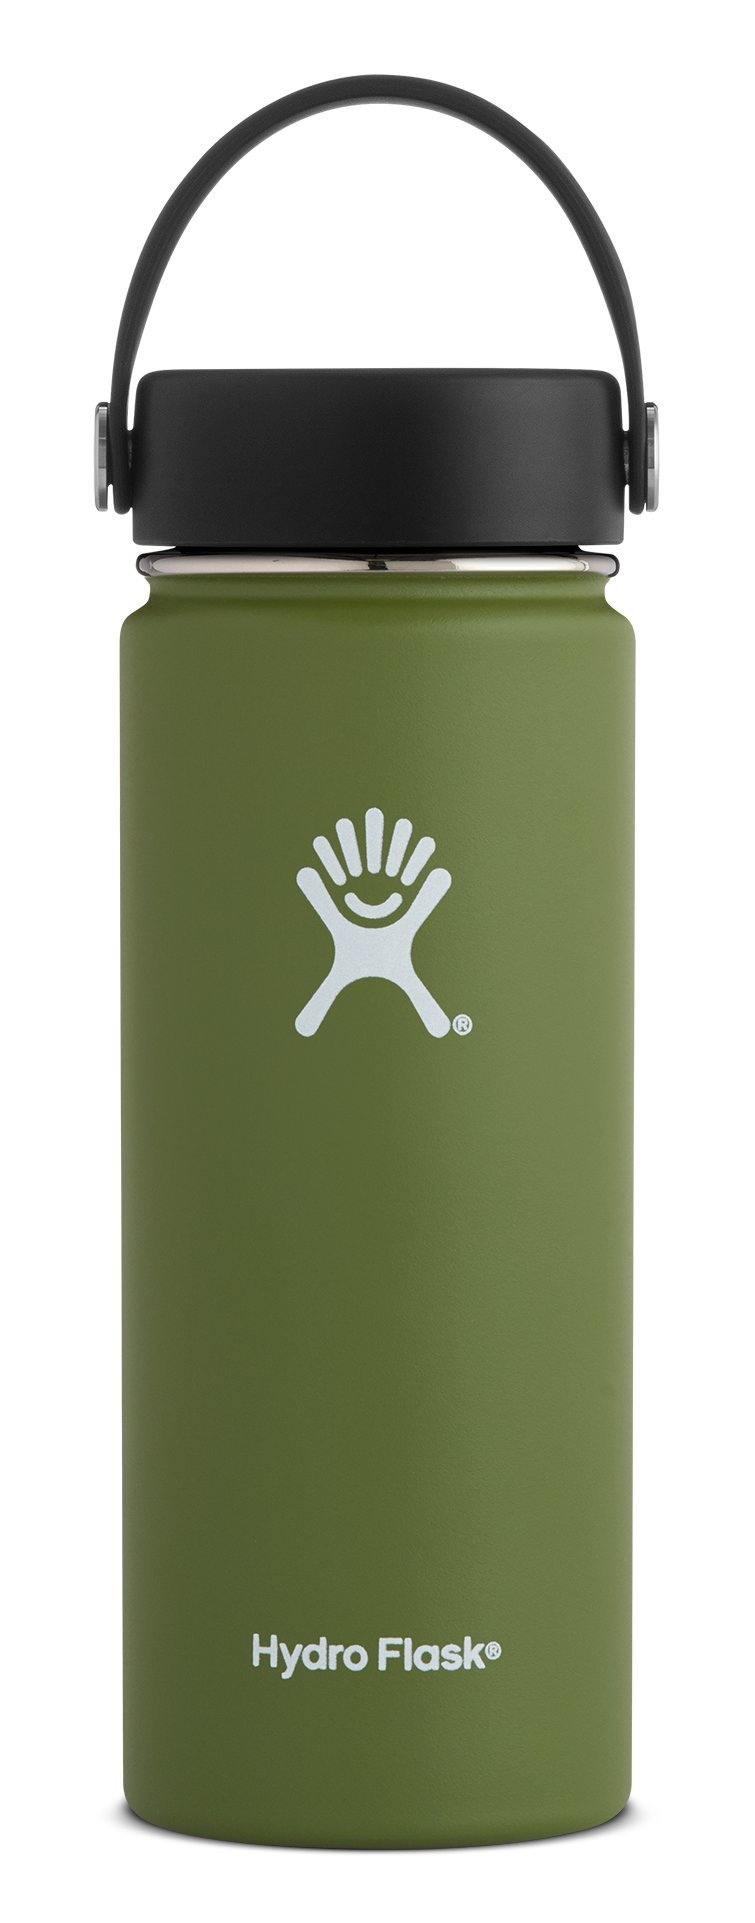 Hydro Flask 18 oz Double Wall Vacuum Insulated Stainless Steel Leak Proof Sports Water Bottle, Wide Mouth with BPA Free Flex Cap, Olive by Hydro Flask (Image #1)